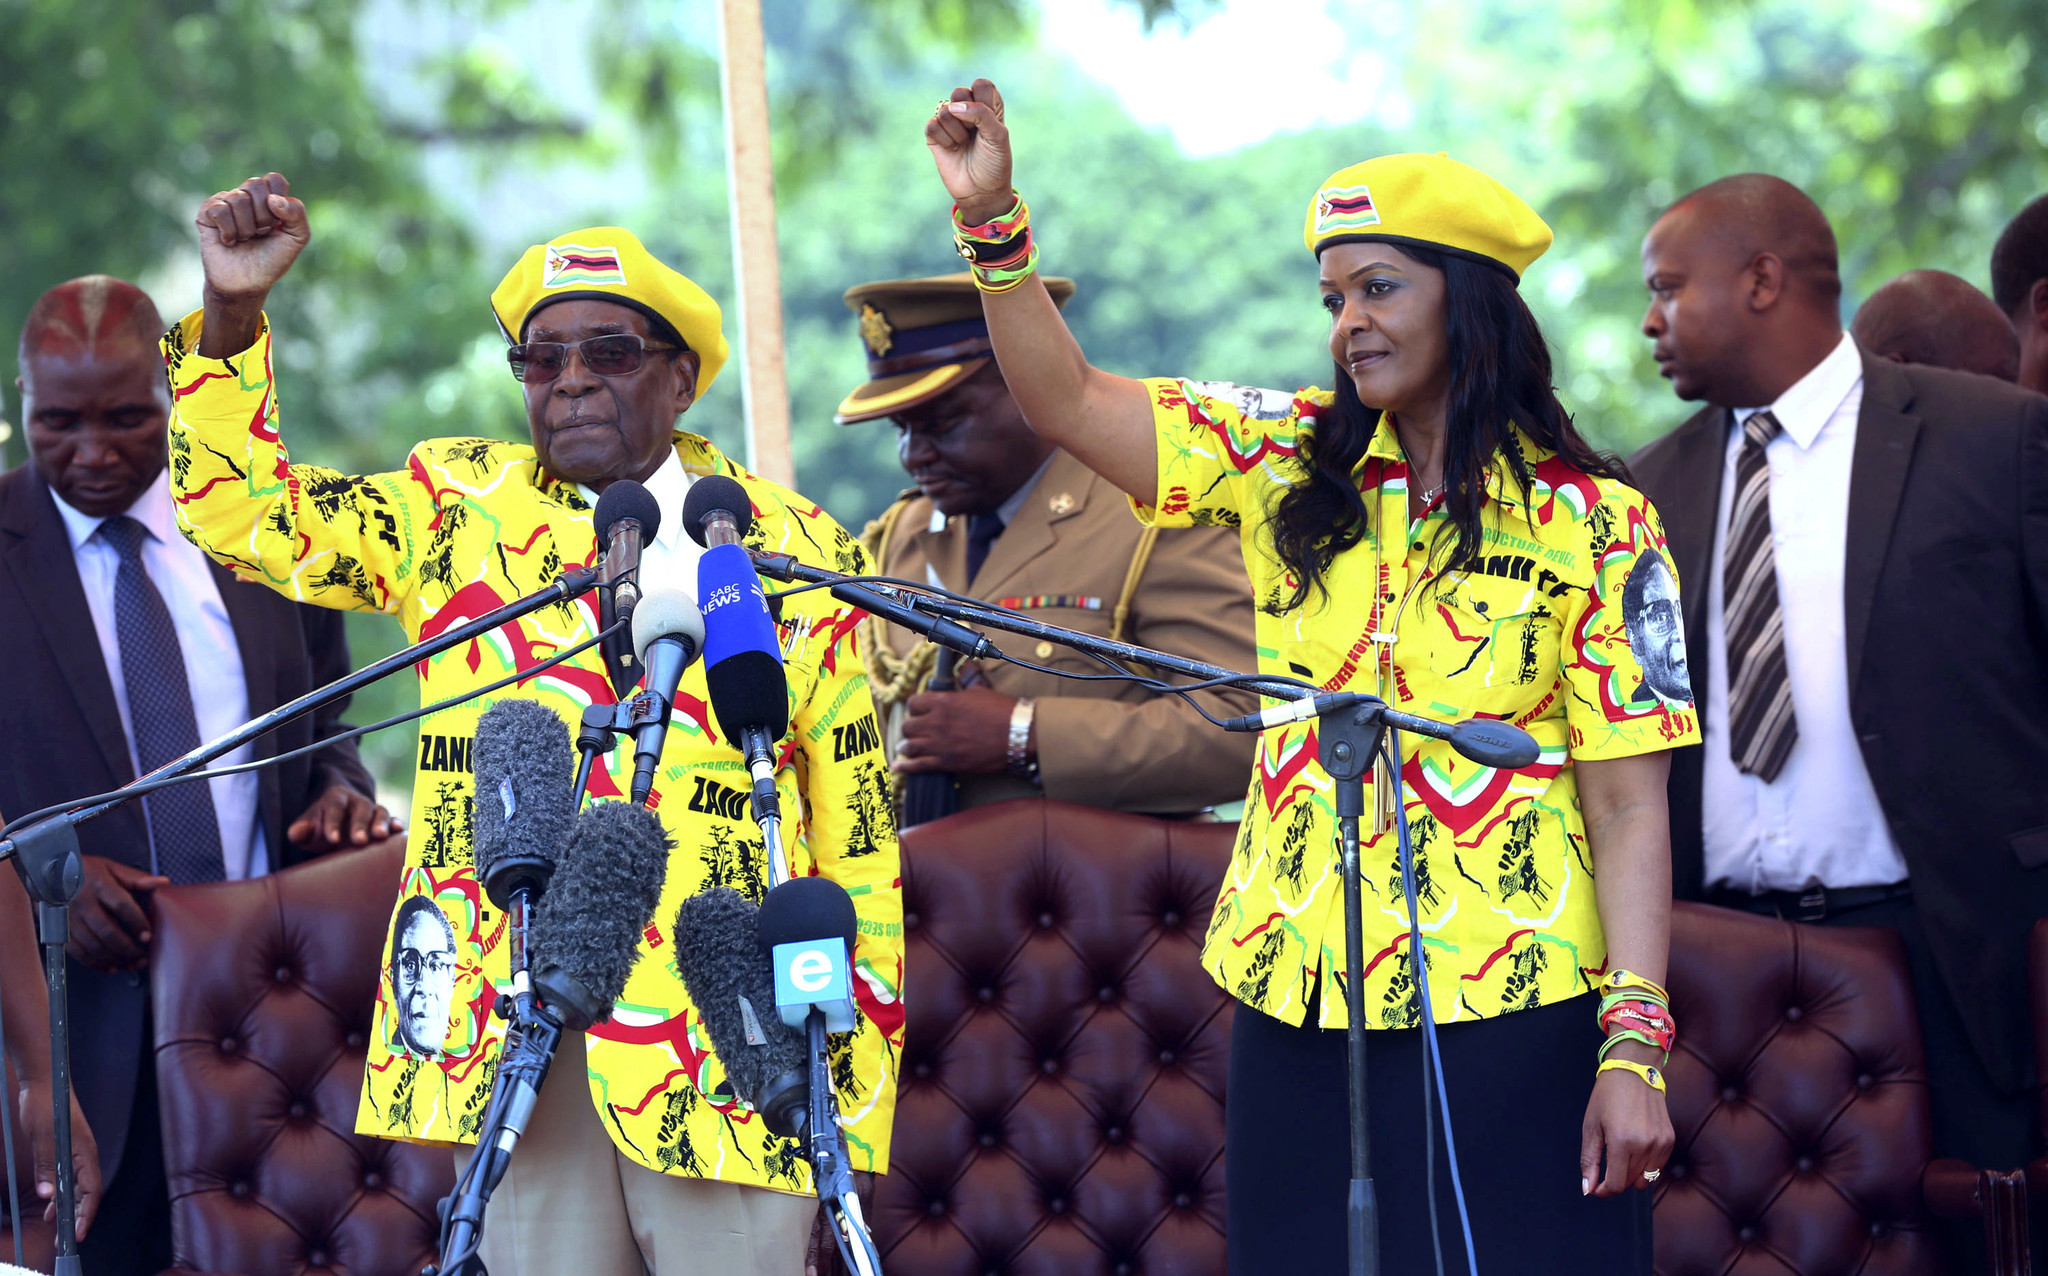 Latest On VP Chiwengas Wife, Marry: More Charges Emerge